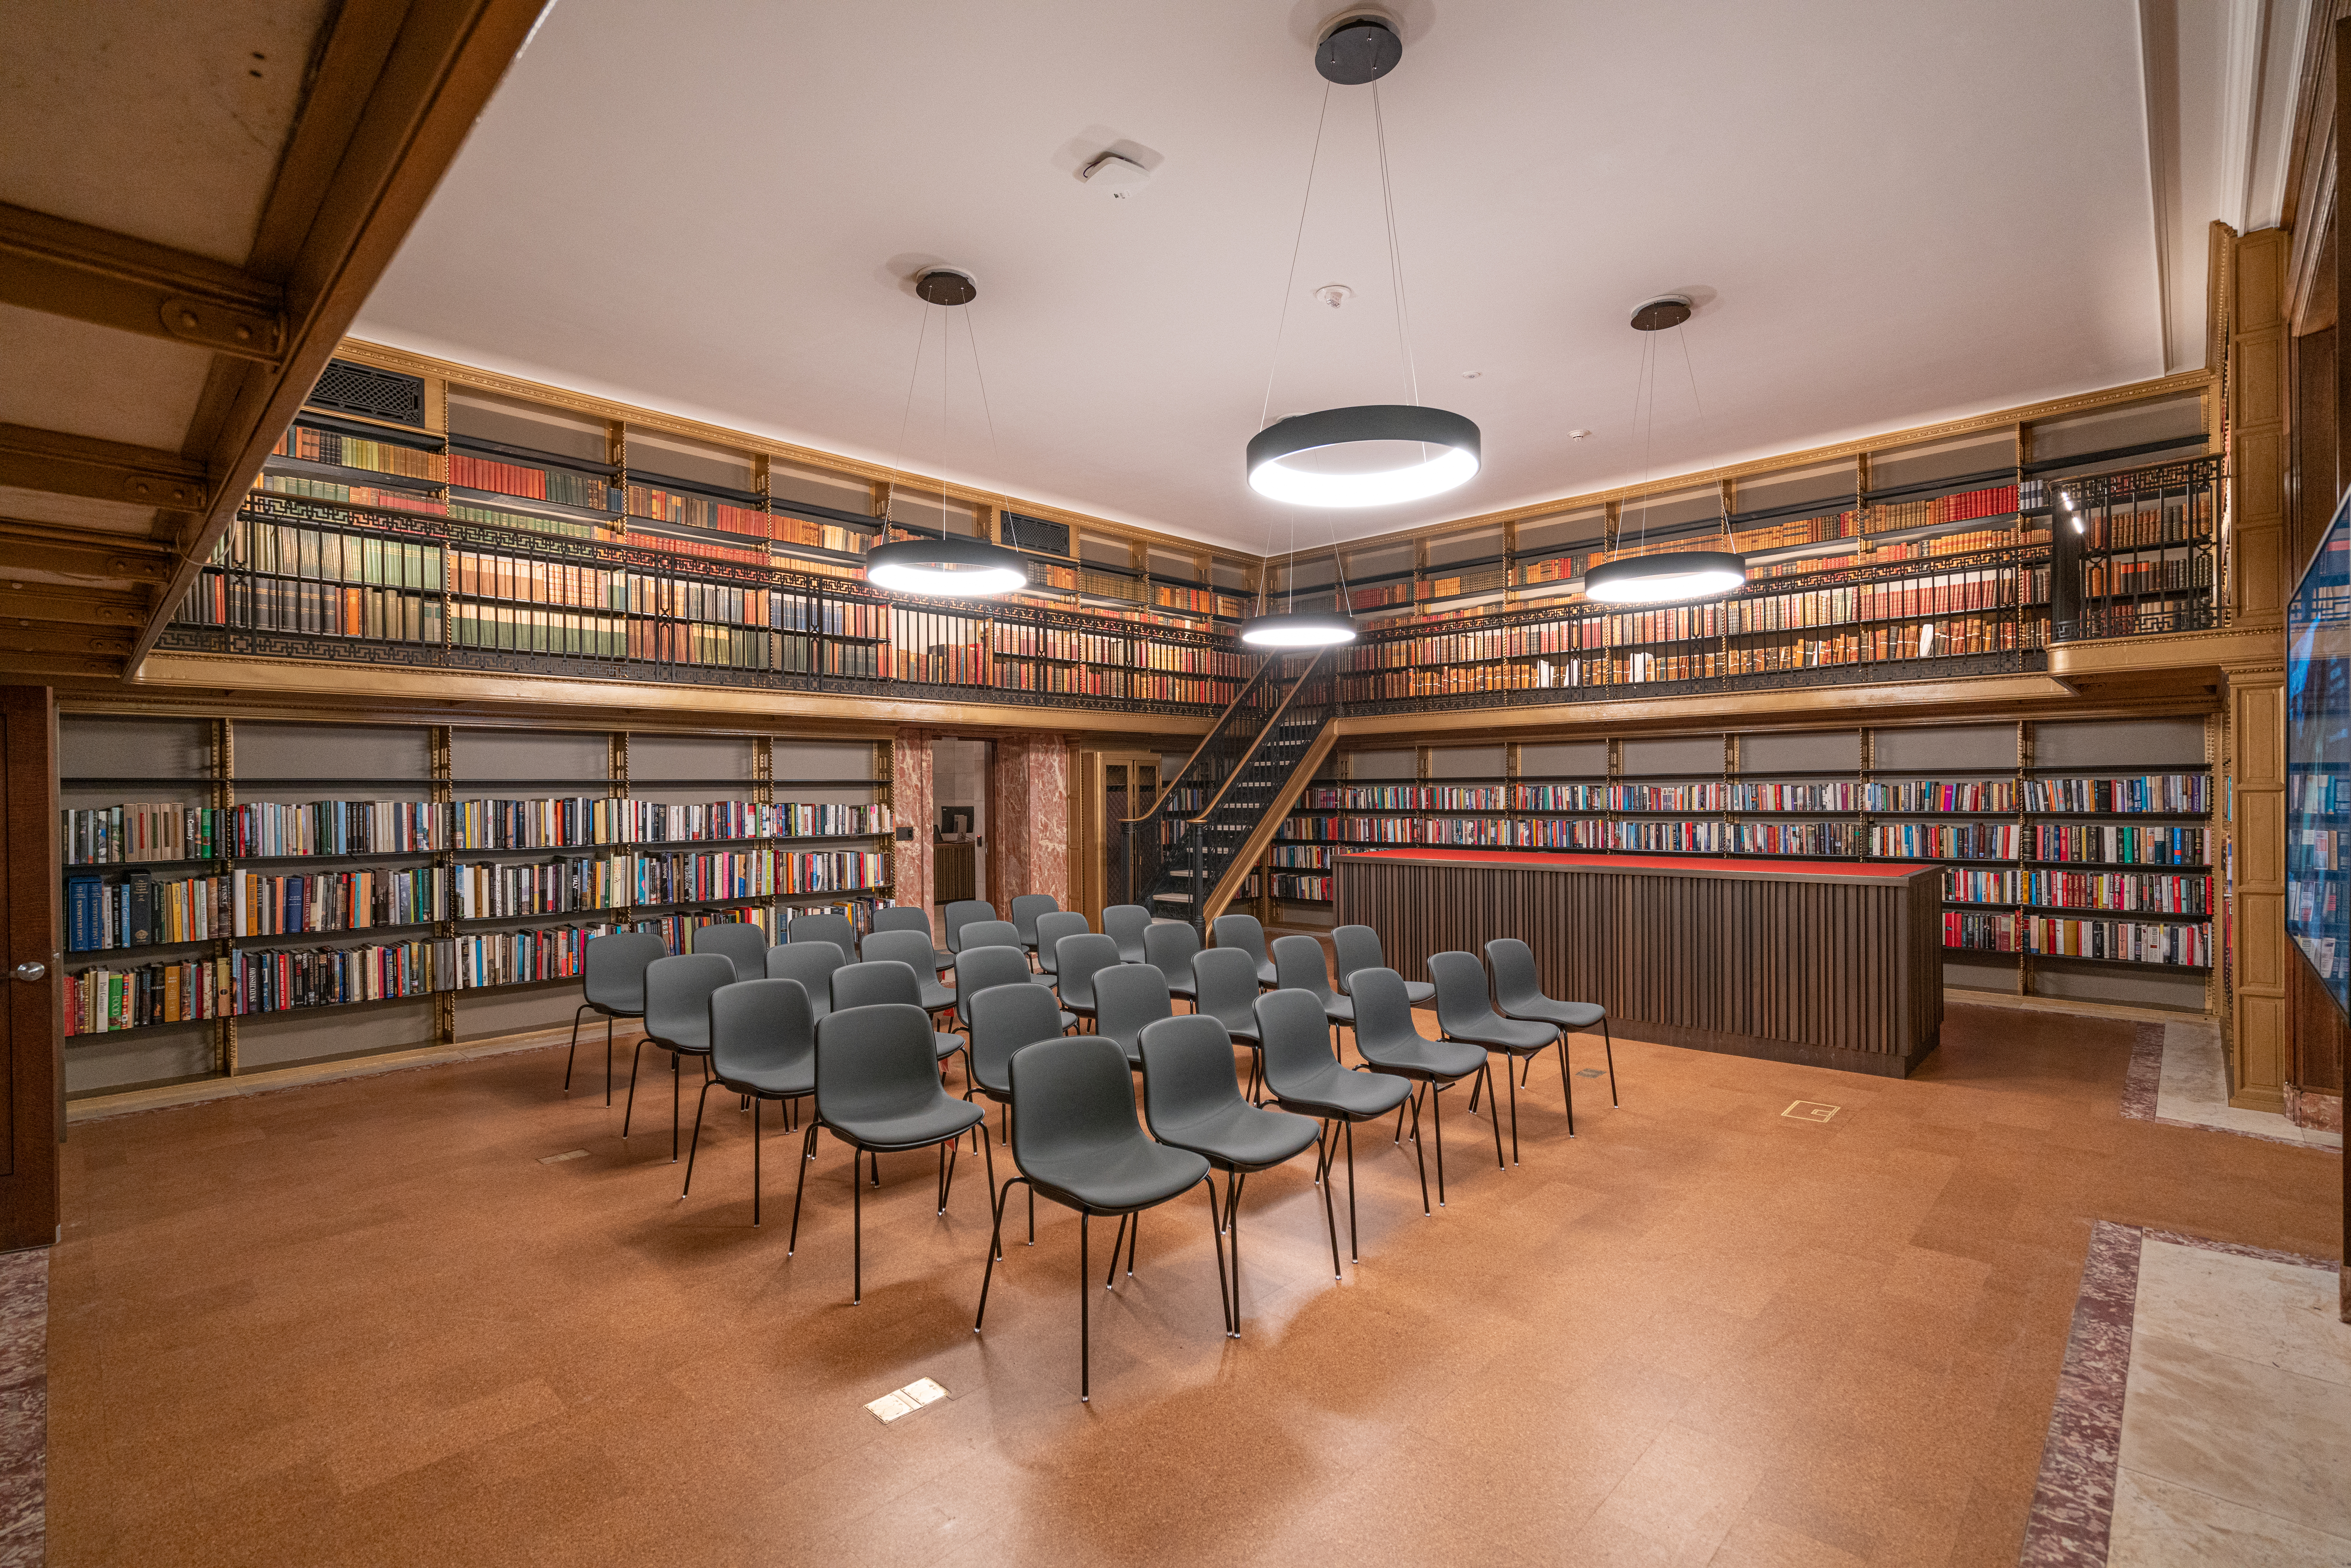 A library room with several chairs, wooden floors, and stacks filled with books.